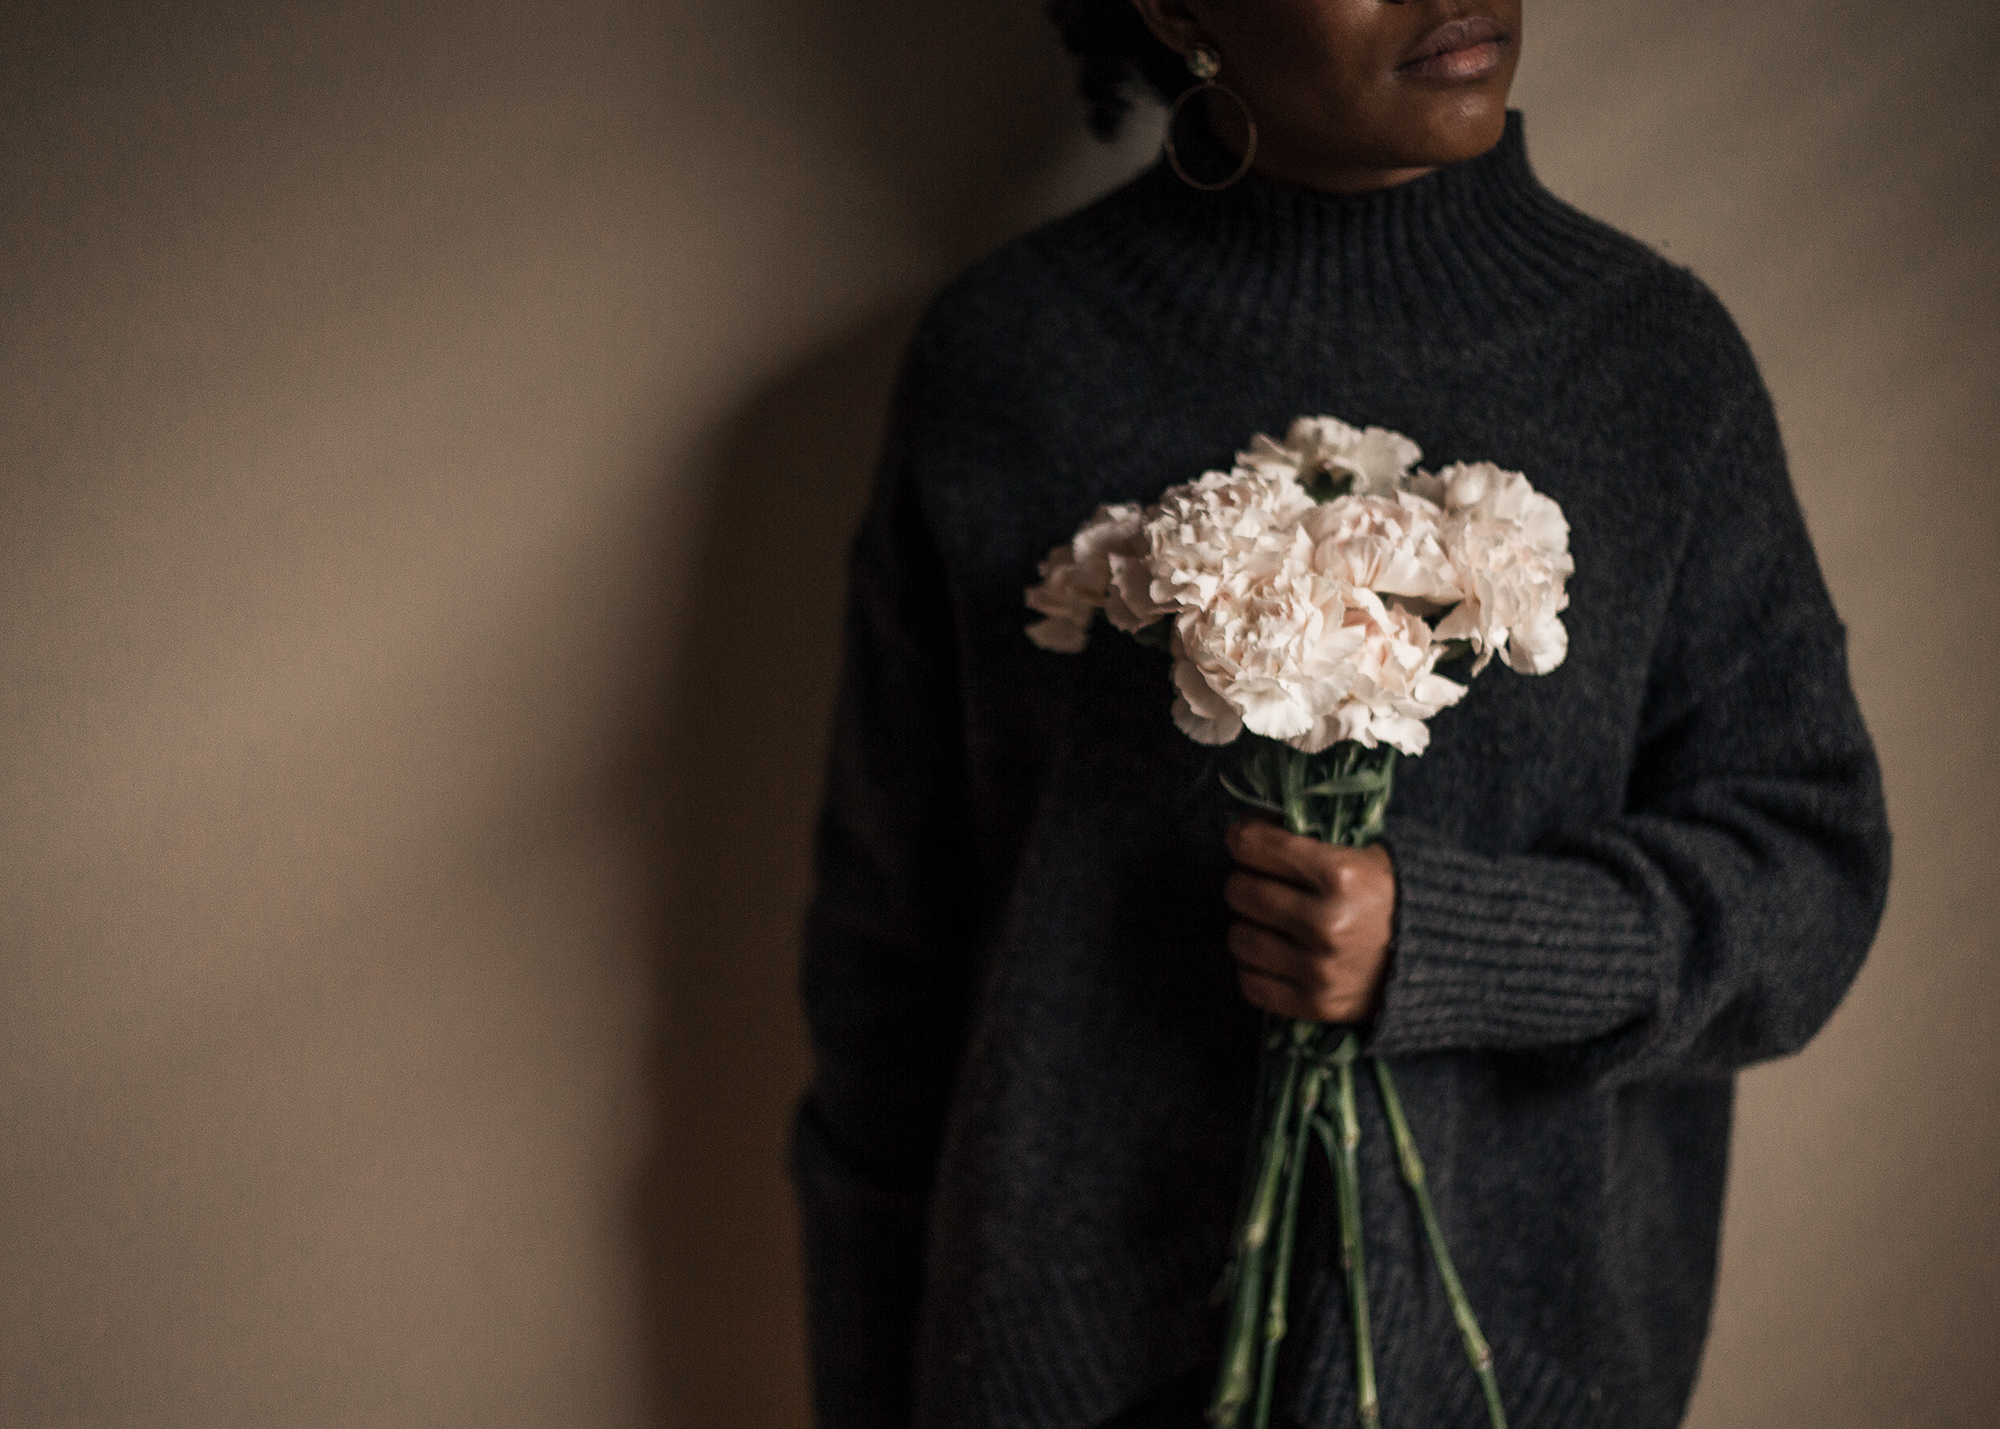 Woman-holding-flowers-in-grey-turtleneck-sweater-by-Atlanta-photographer-Chanel-French.jpg